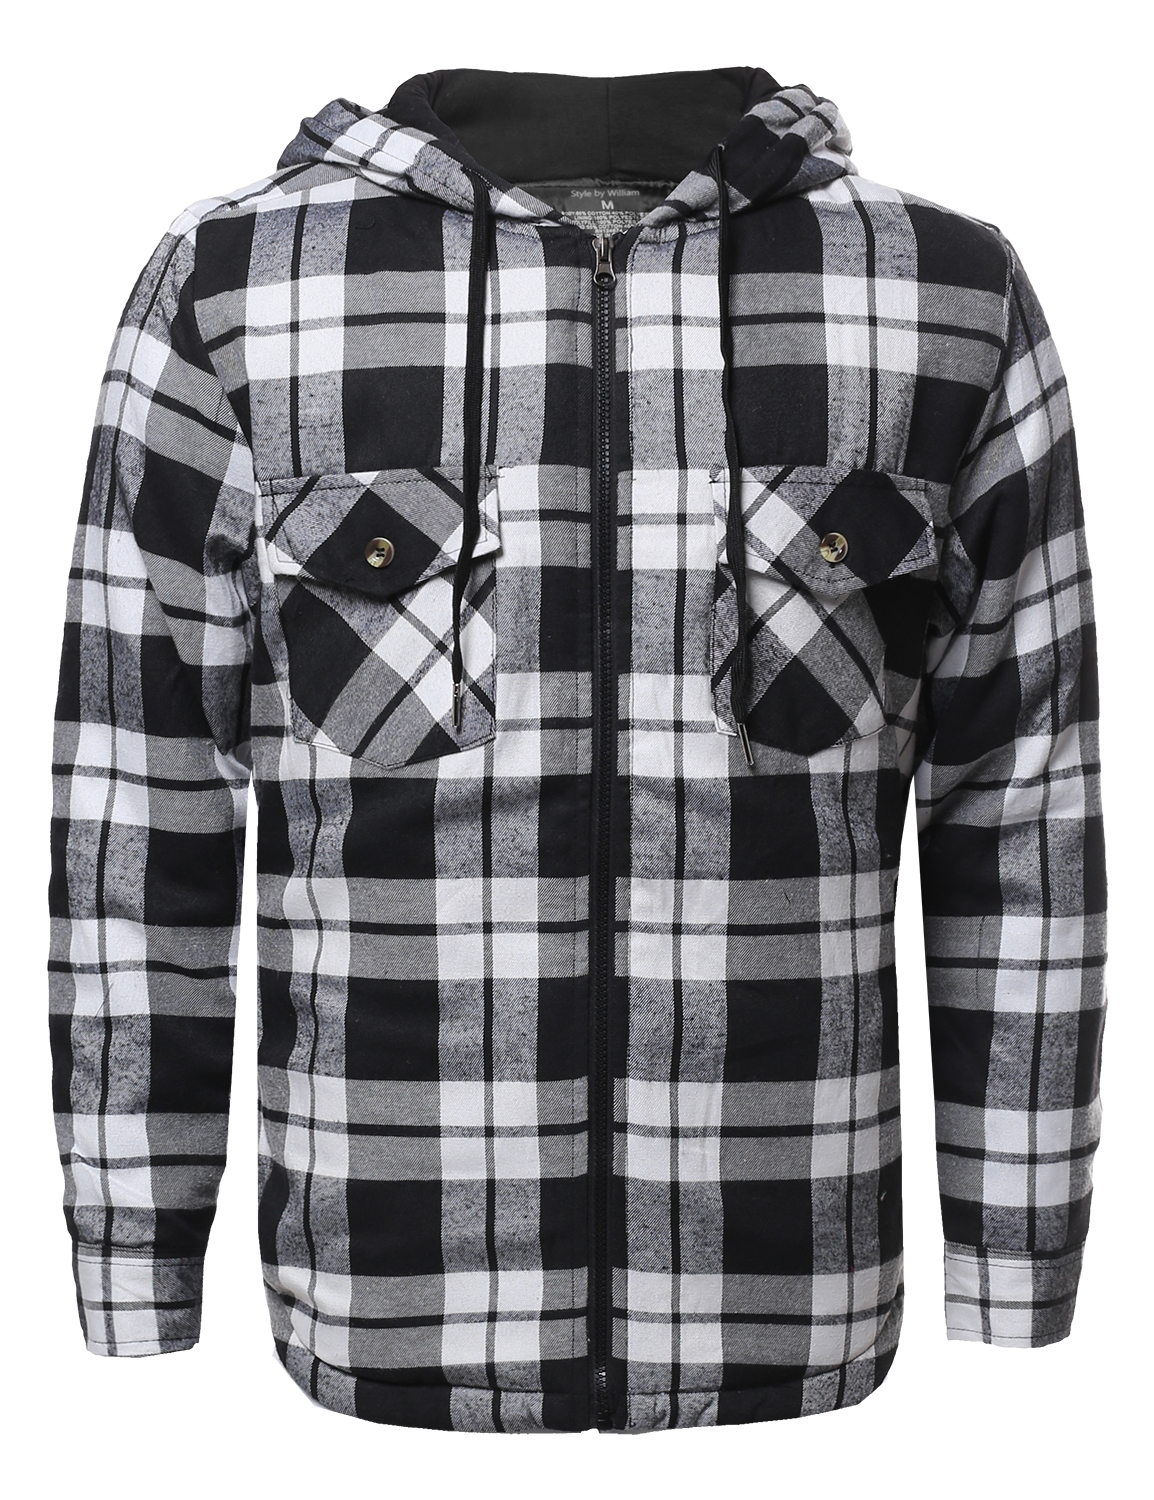 COMUNE Men's LARGE Branton Ombre Flannel Hooded Jacket Brown Black Plaid HTF. Pre-Owned. $ or Best Offer +$ shipping. Cahartt Men's J Sandstone Flannel Quilt Lined Hooded Jacket Brown Large. Pre-Owned. Mens BC Clothing HOODED FLANNEL Shirt Jacket Plaid Quilted Lining Blue Red Black See more like this. SPONSORED.